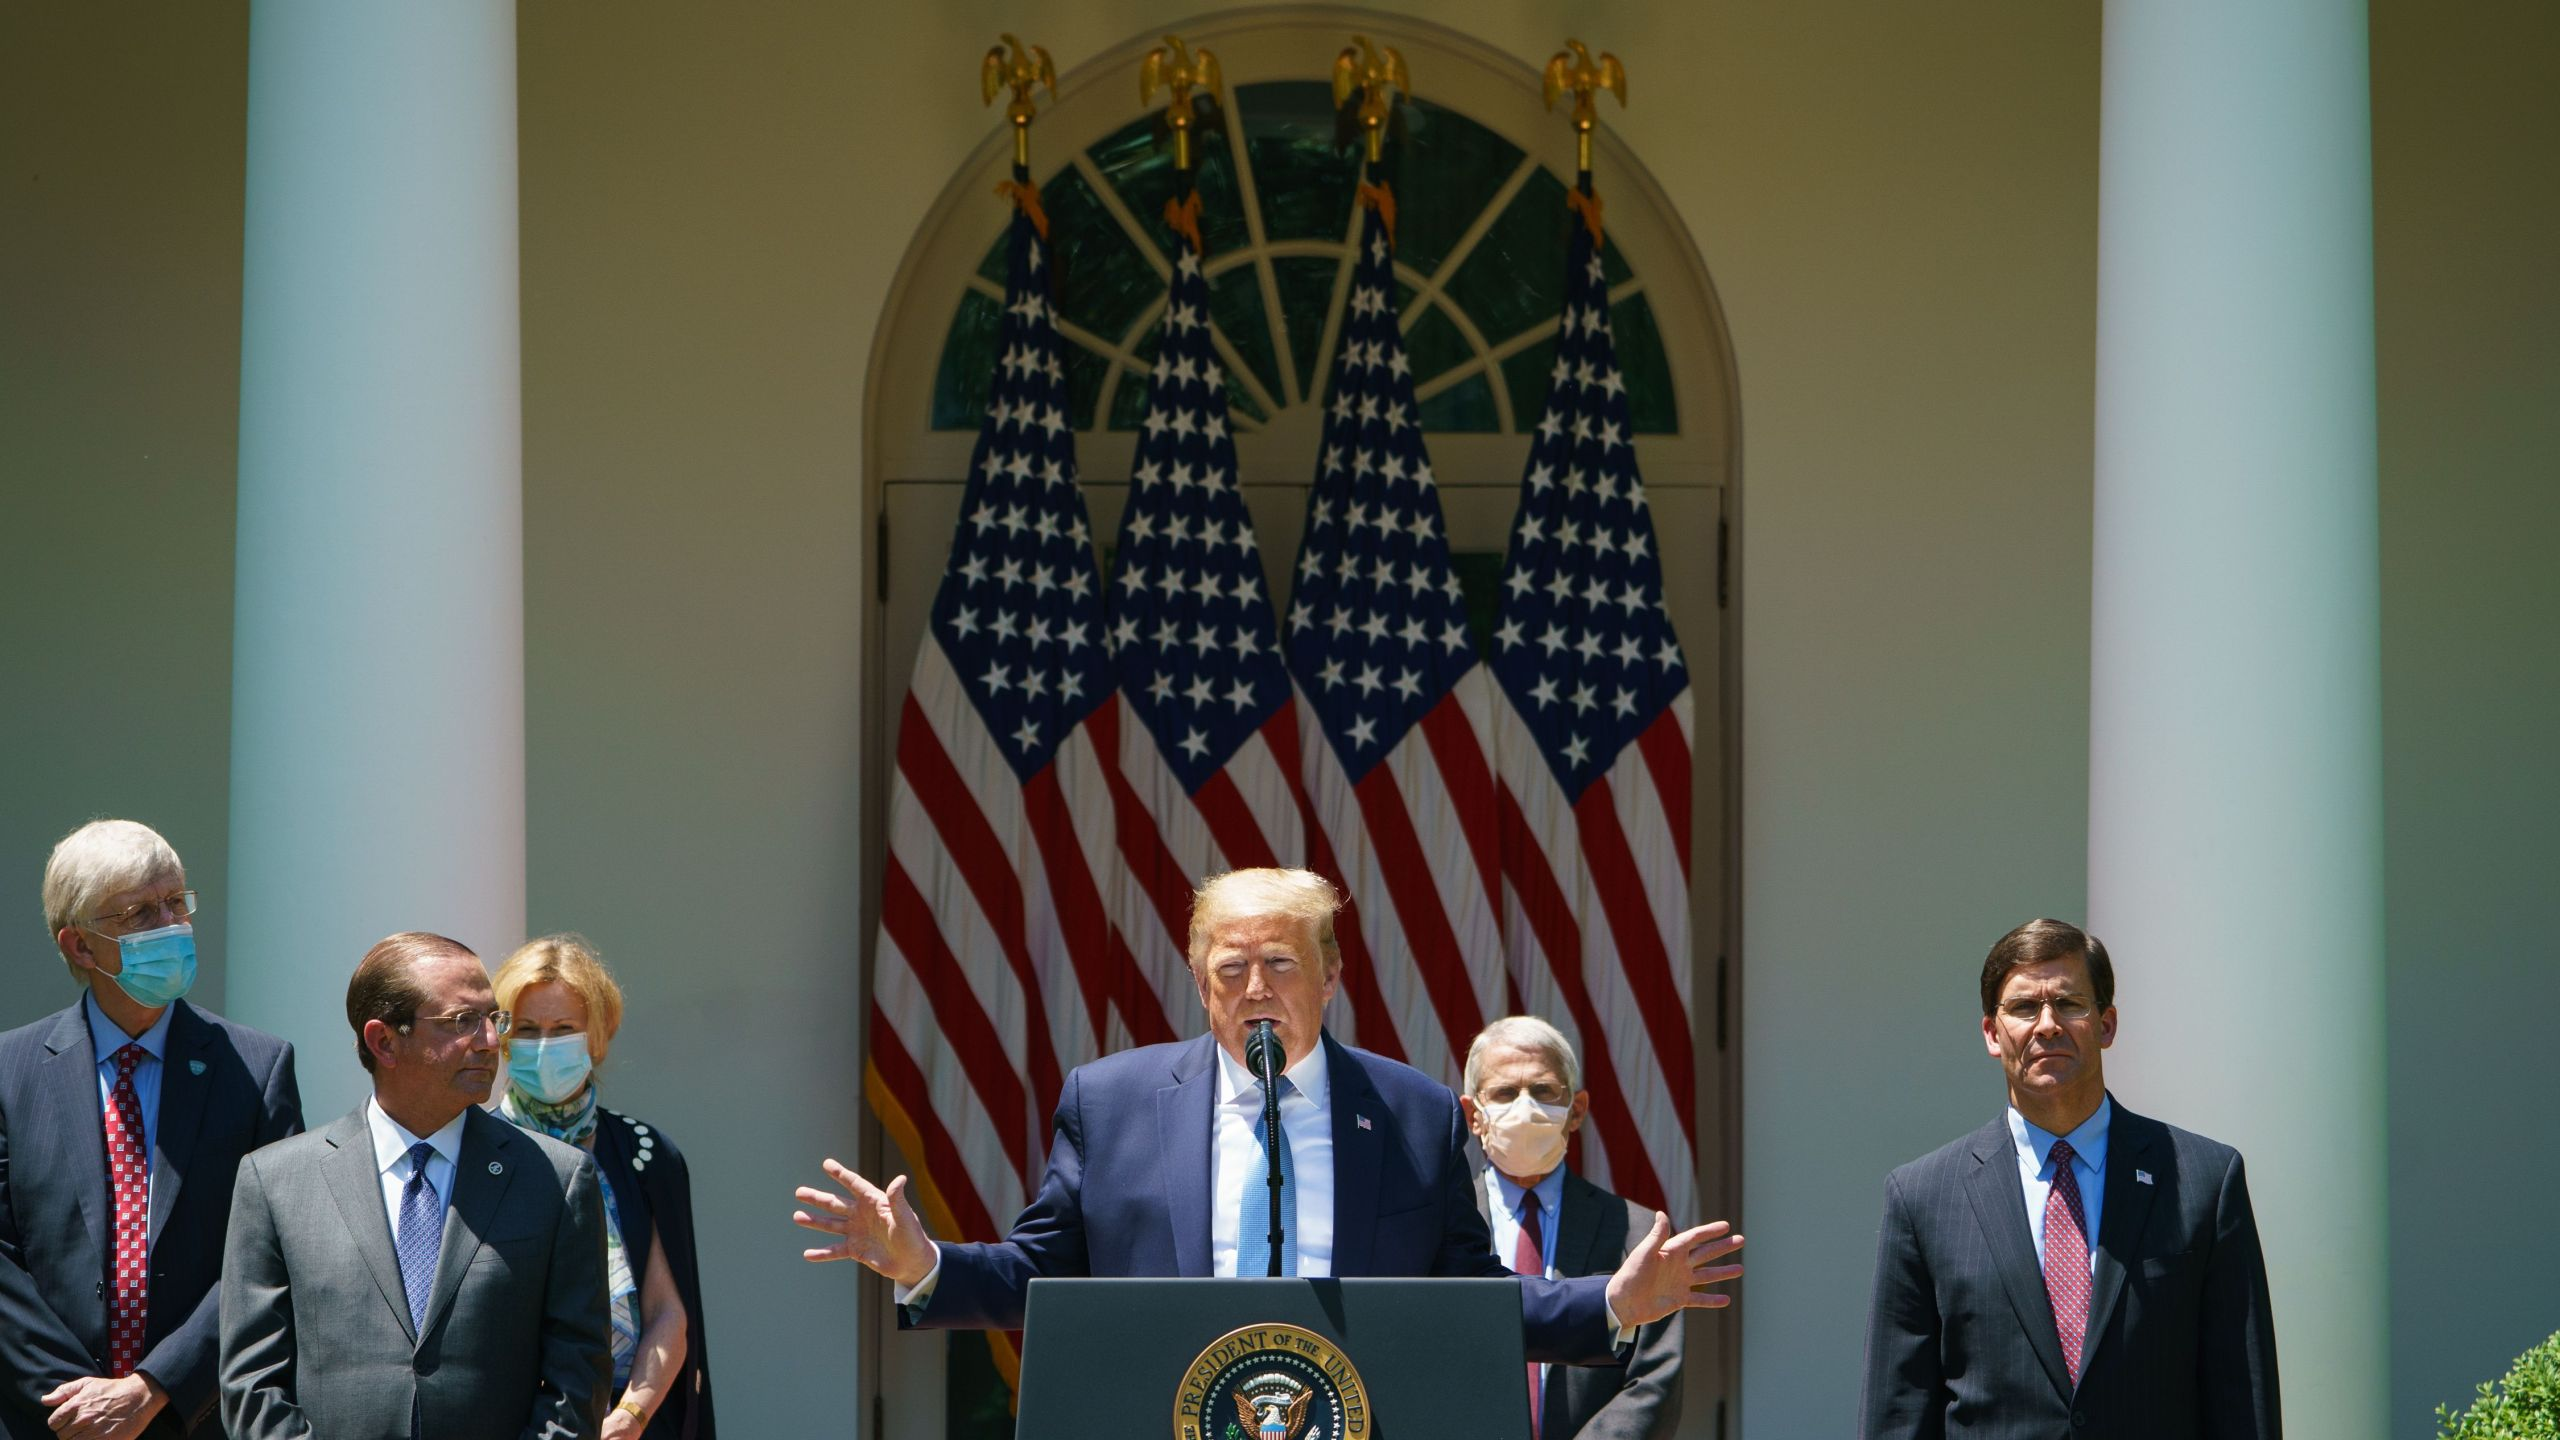 Donald Trump speaks about vaccine development in the Rose Garden of the White House in Washington, D.C. on May 15, 2020. (MANDEL NGAN/AFP via Getty Images)